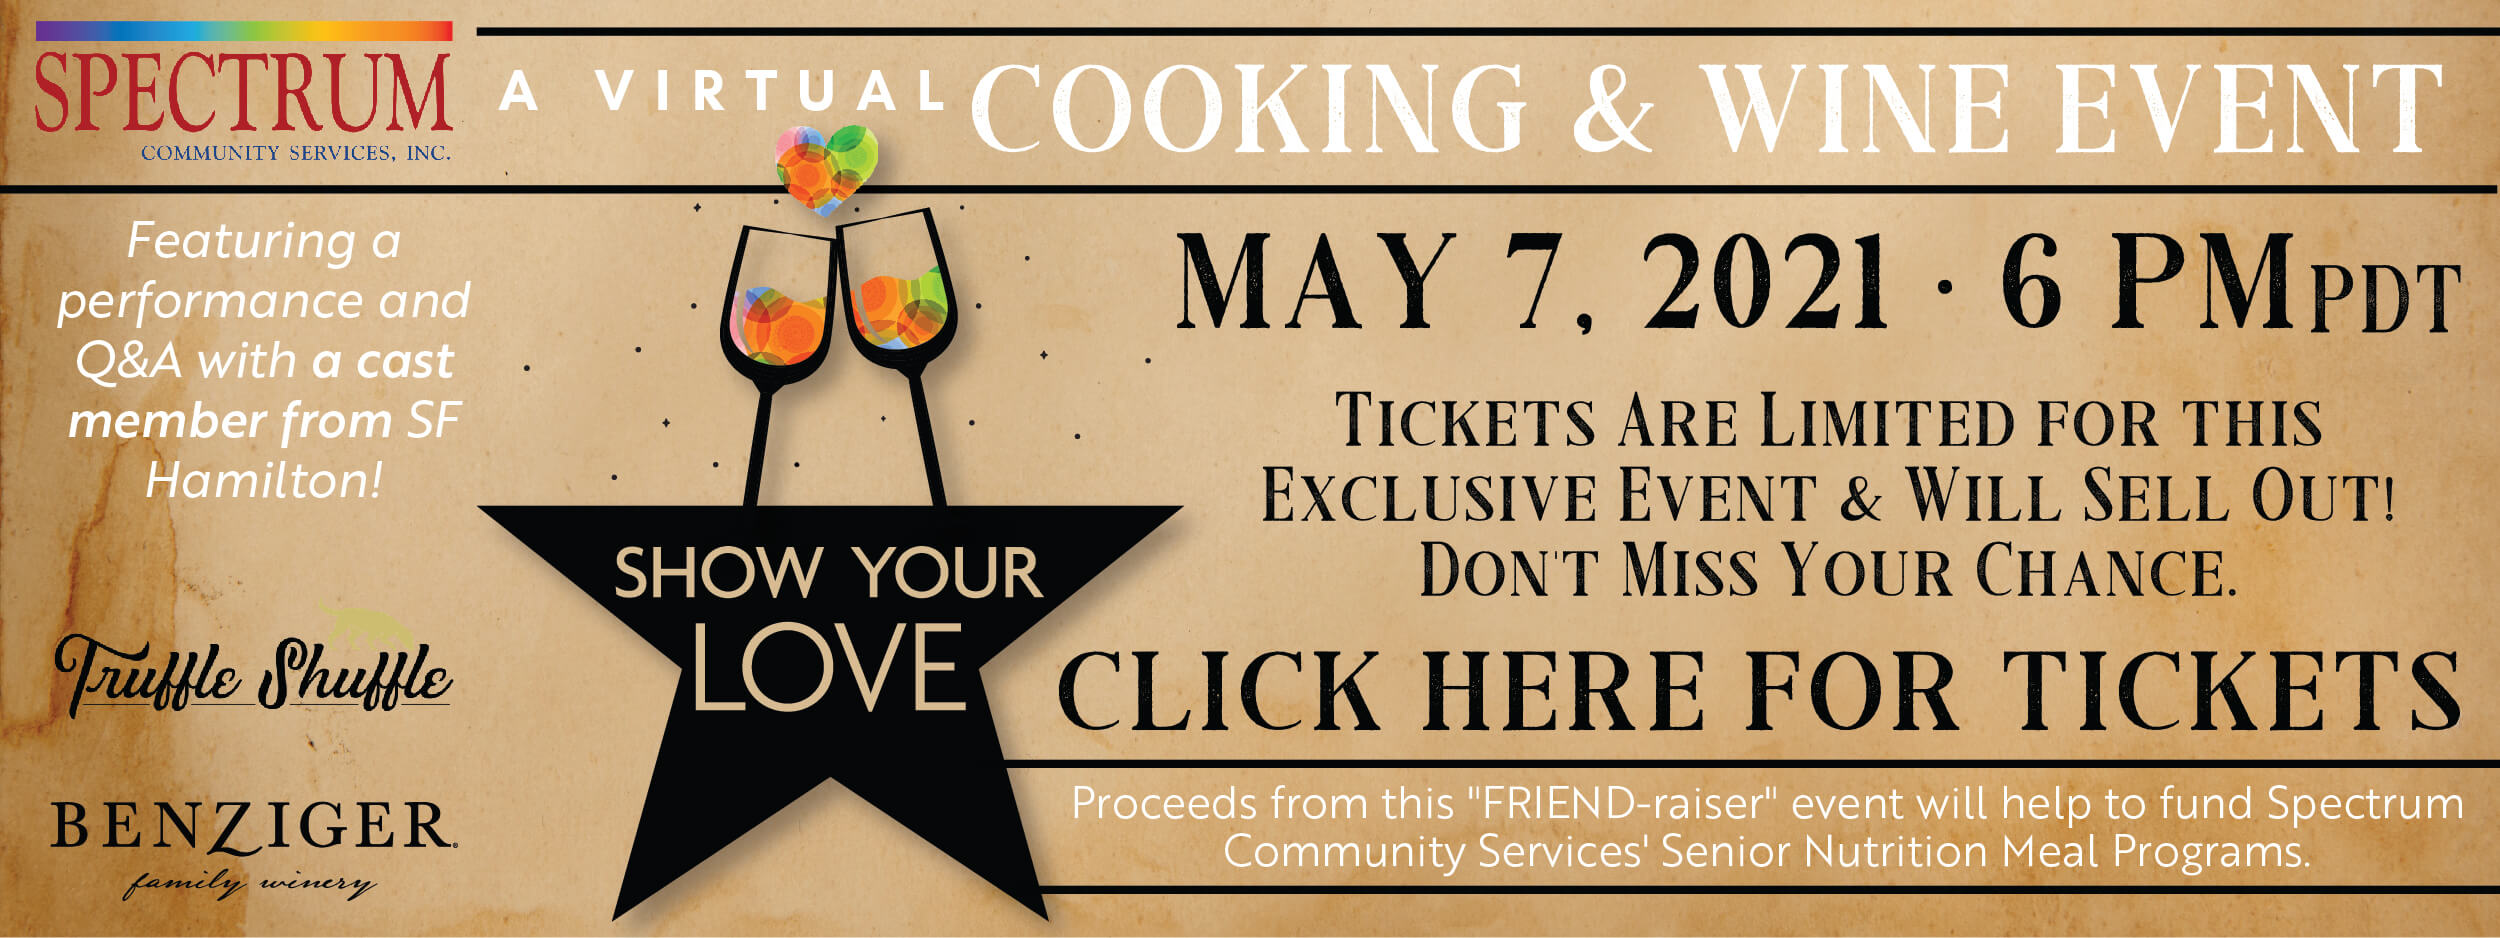 A Virtual Cooking & Wine Event